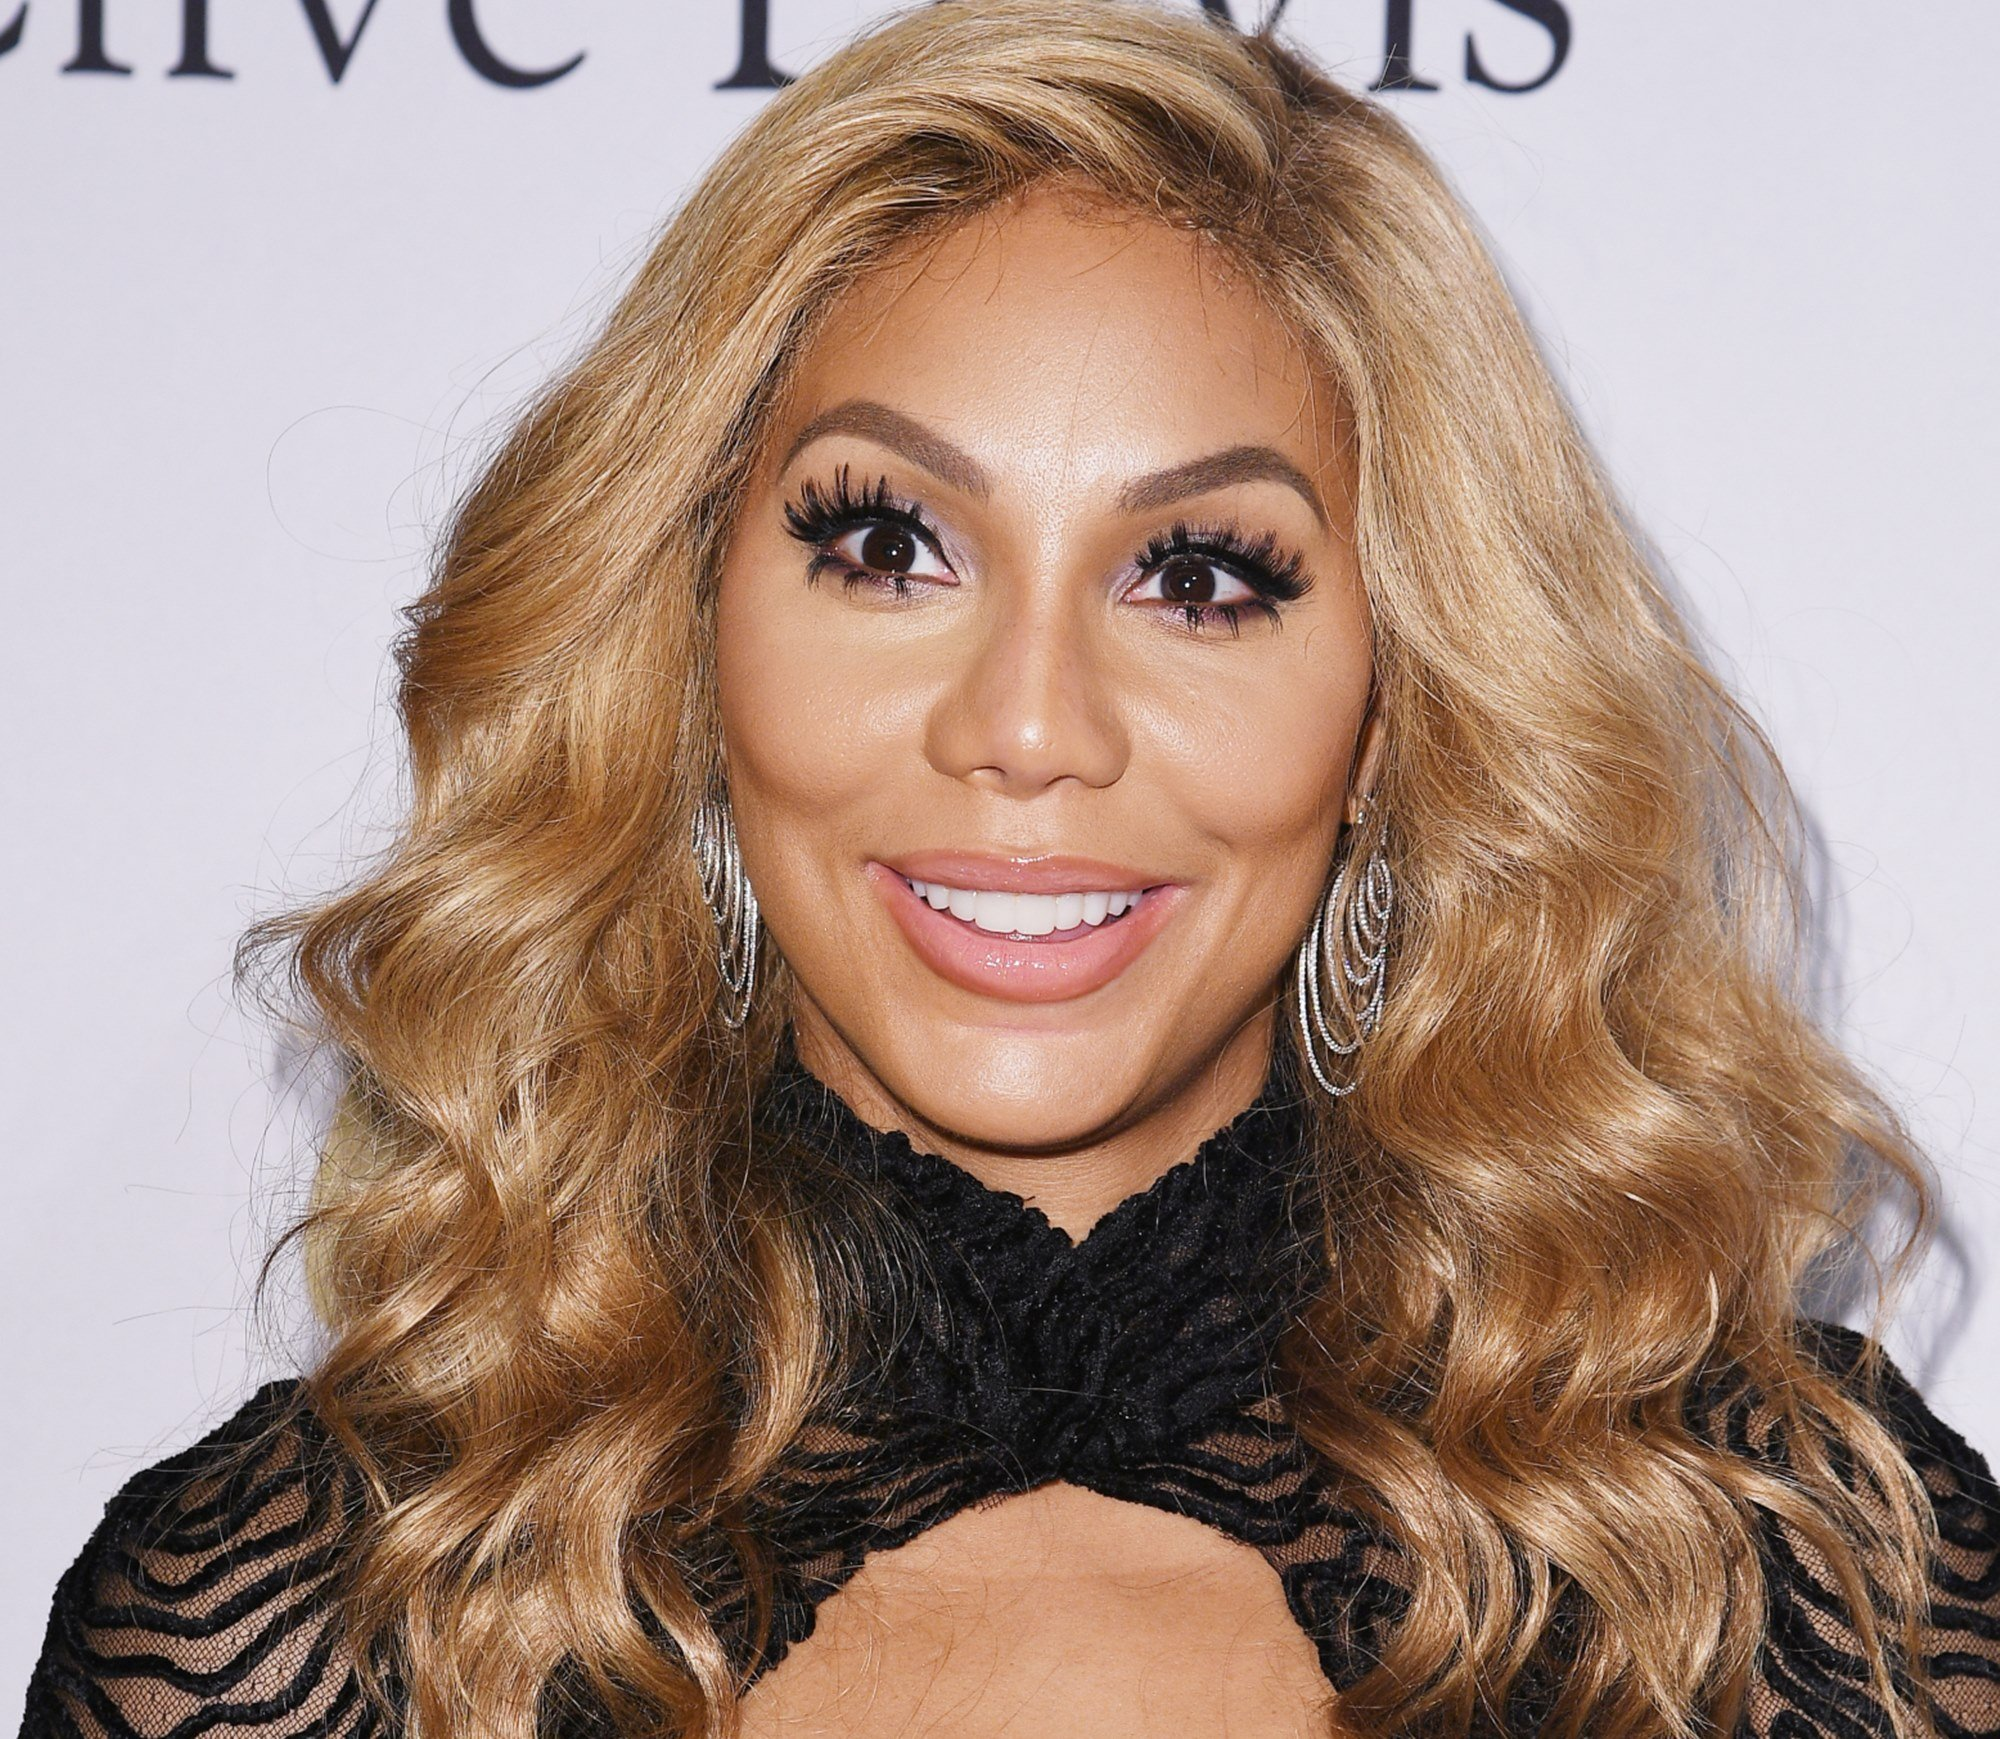 Tamar Braxton Says She Needs A Vacation – See Her Video Featuring Her Son, Logan Herbert That Has Fans Laughing Their Hearts Out